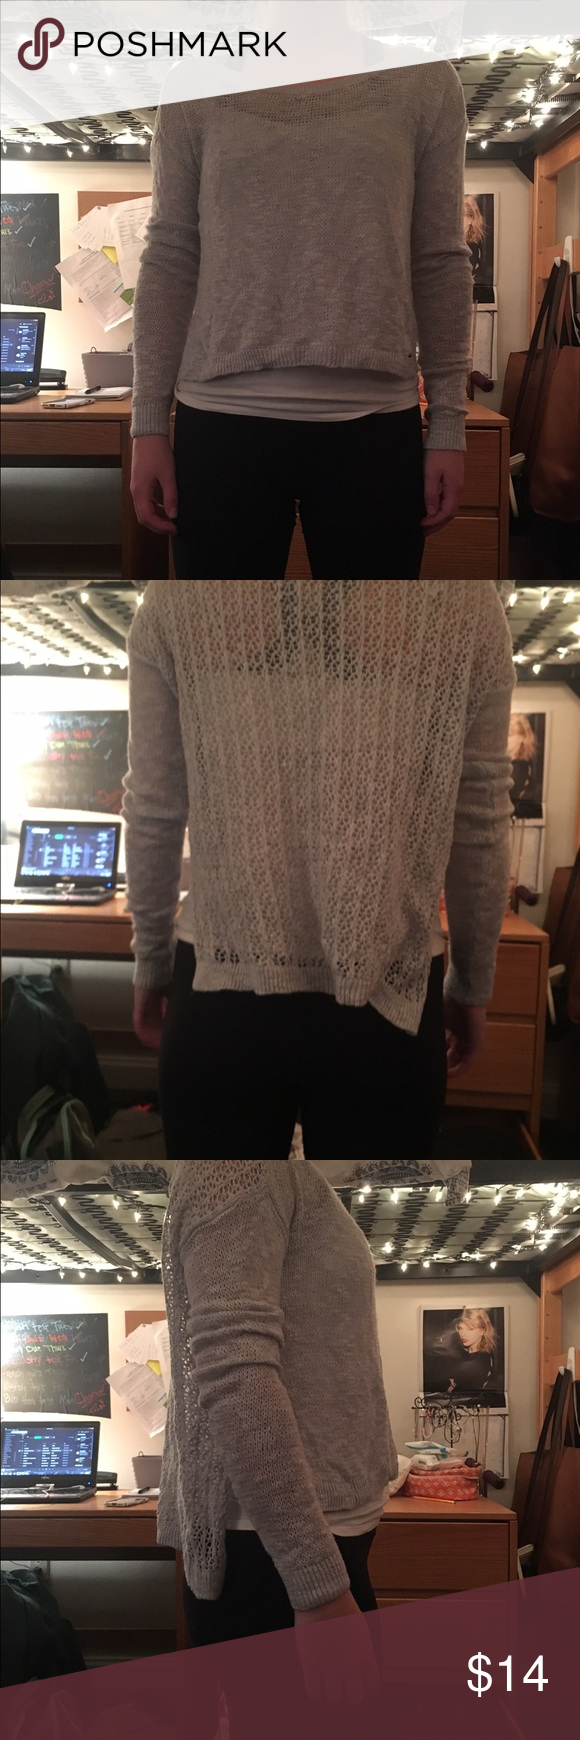 Abercrombie sweater Light and airy cropped Abercrombie grey sweater Abercrombie & Fitch Sweaters